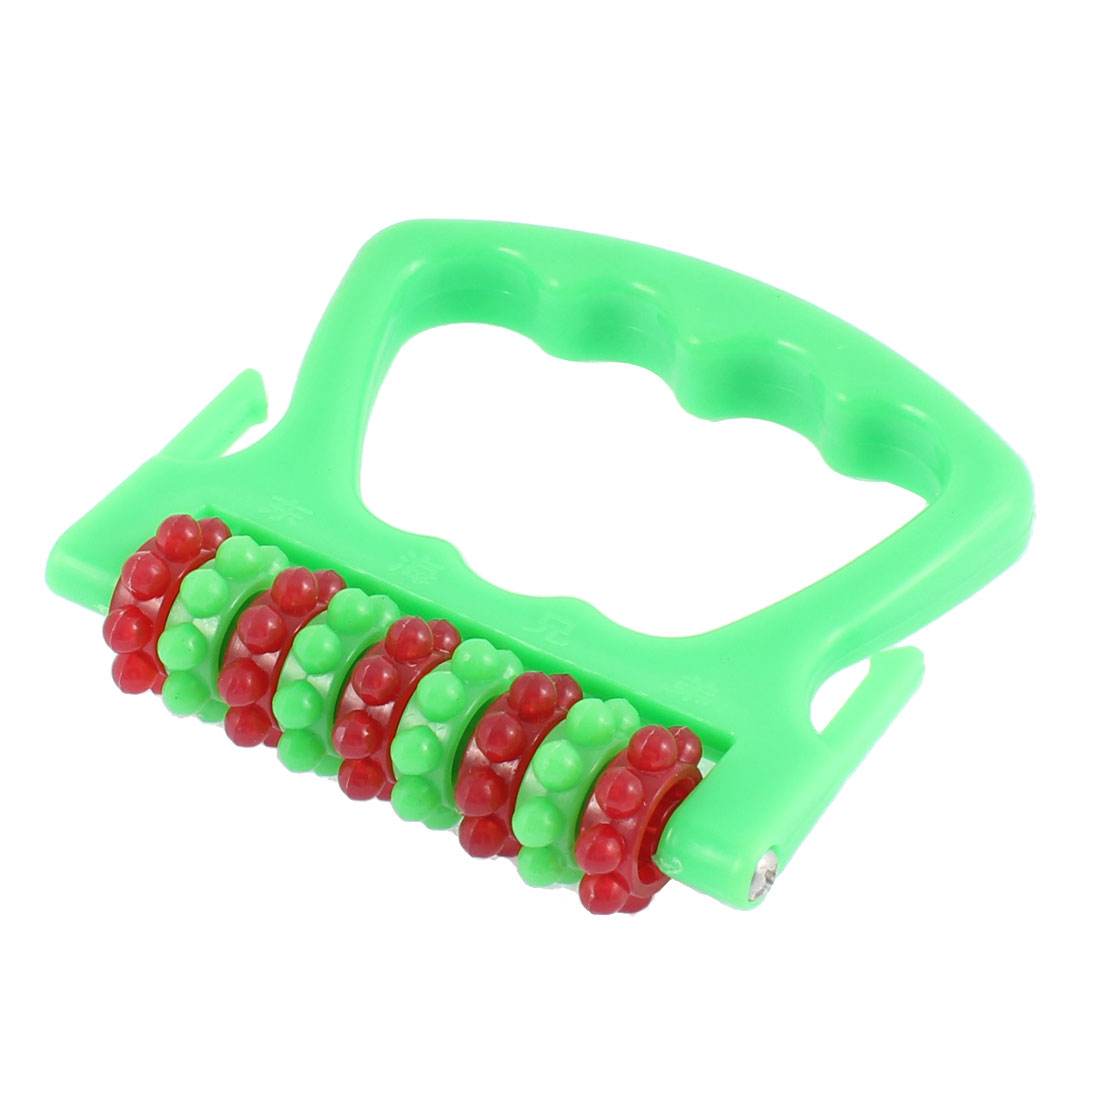 Plastic Handheld Back Pain Stress Release Massage Roller Tool Green